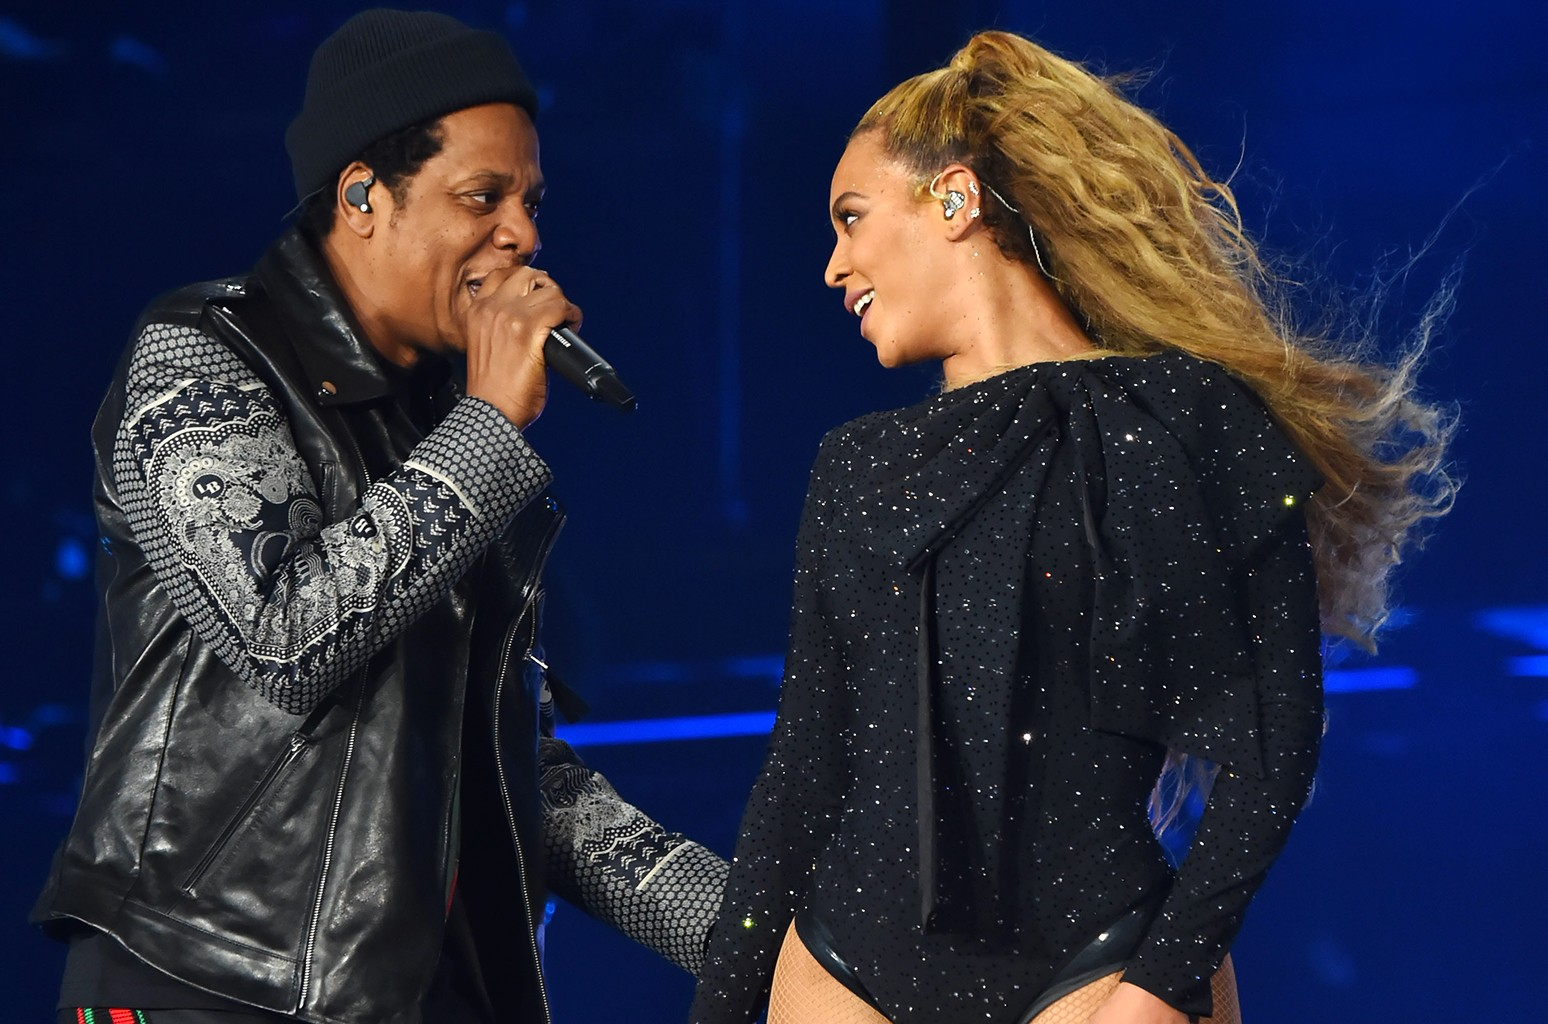 Queen Bey Blue Ivy What Would Beyonce Do Banner  Beyonce Party JayZ Beyonce Banner Lemonade Yonce Kanye Jay Z